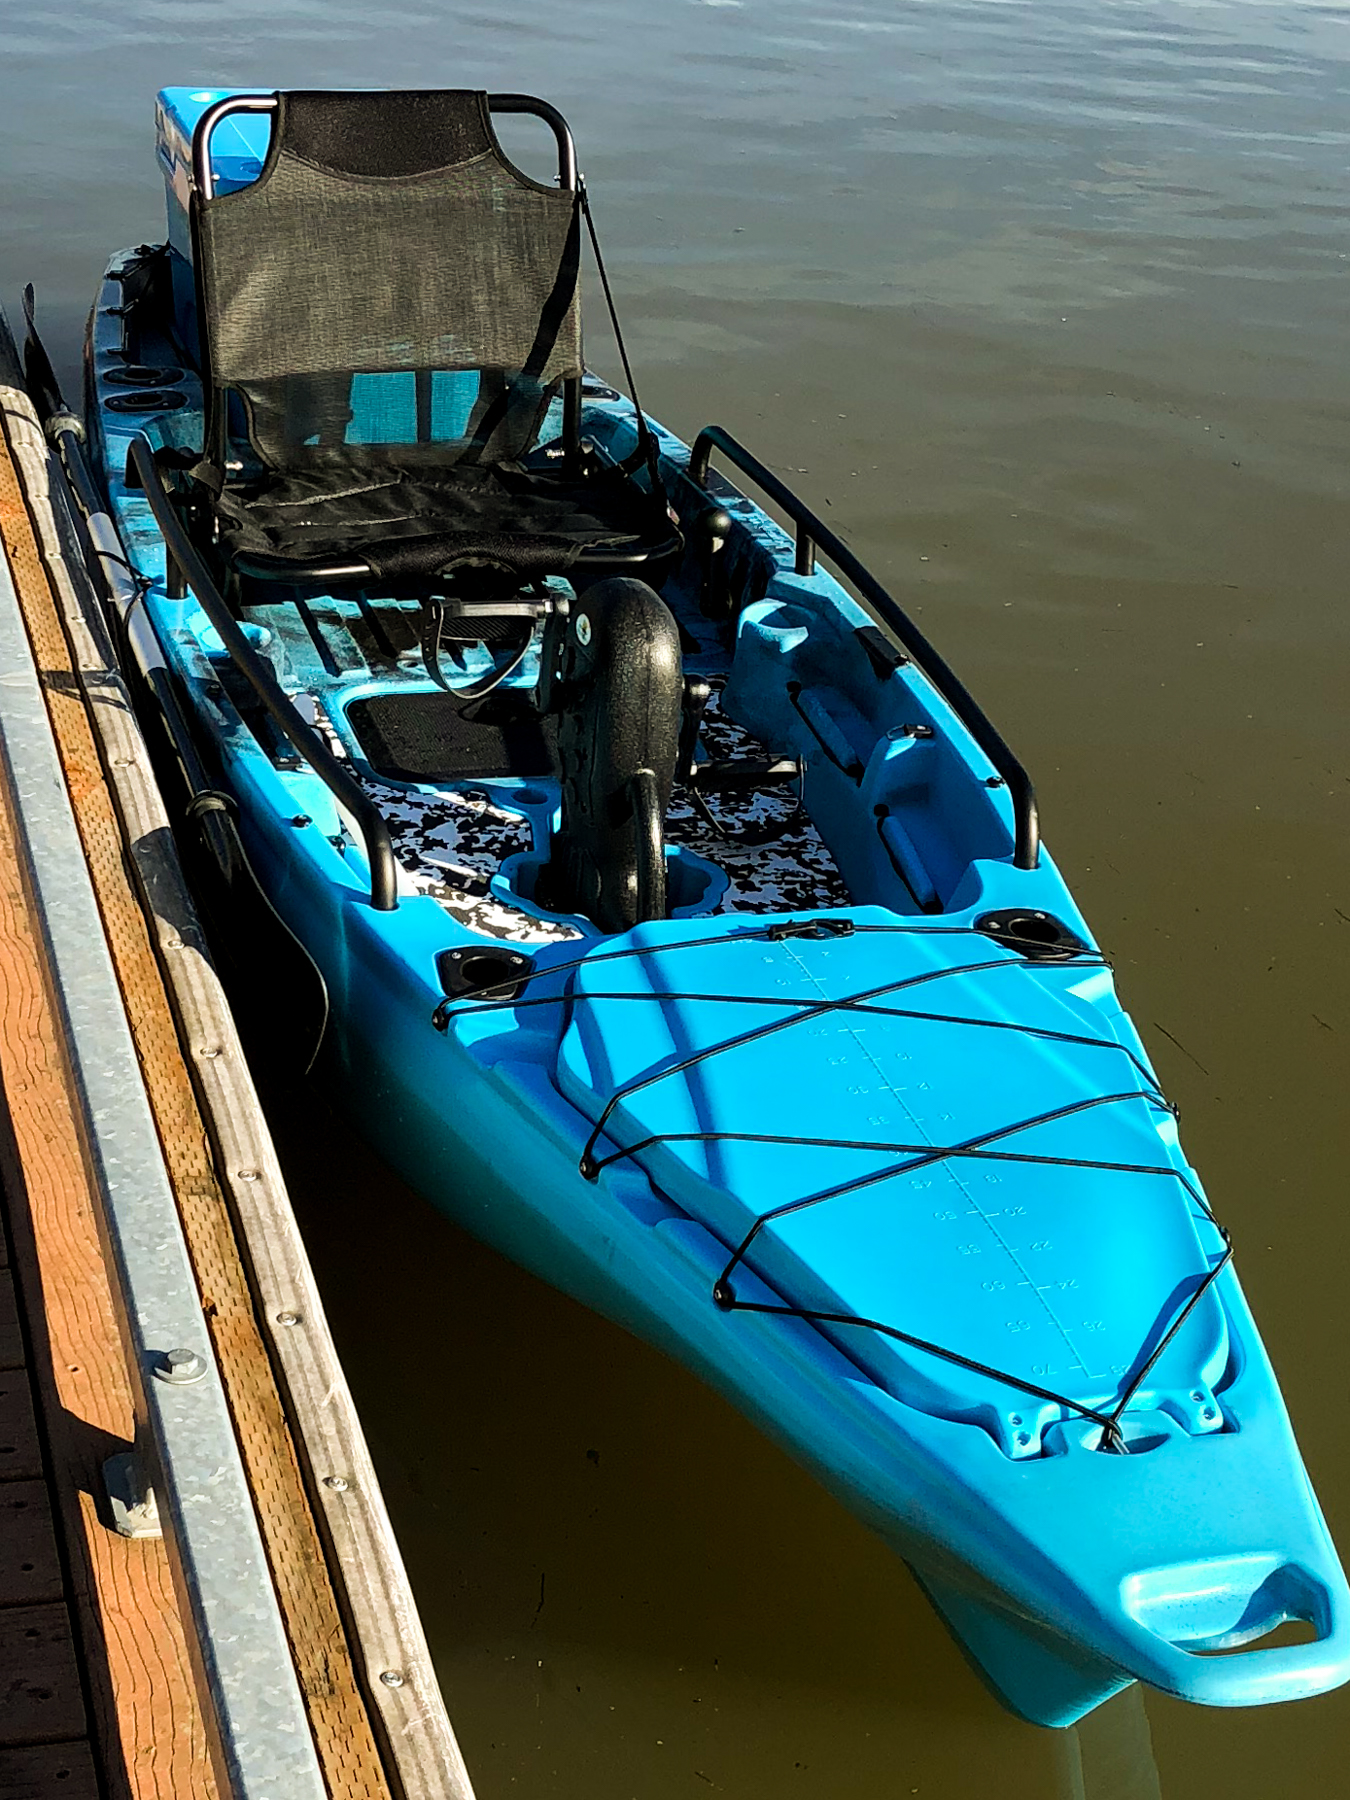 Blackpoint marine llc customized rigid inflatable boats for Fishing kayak with foot pedals